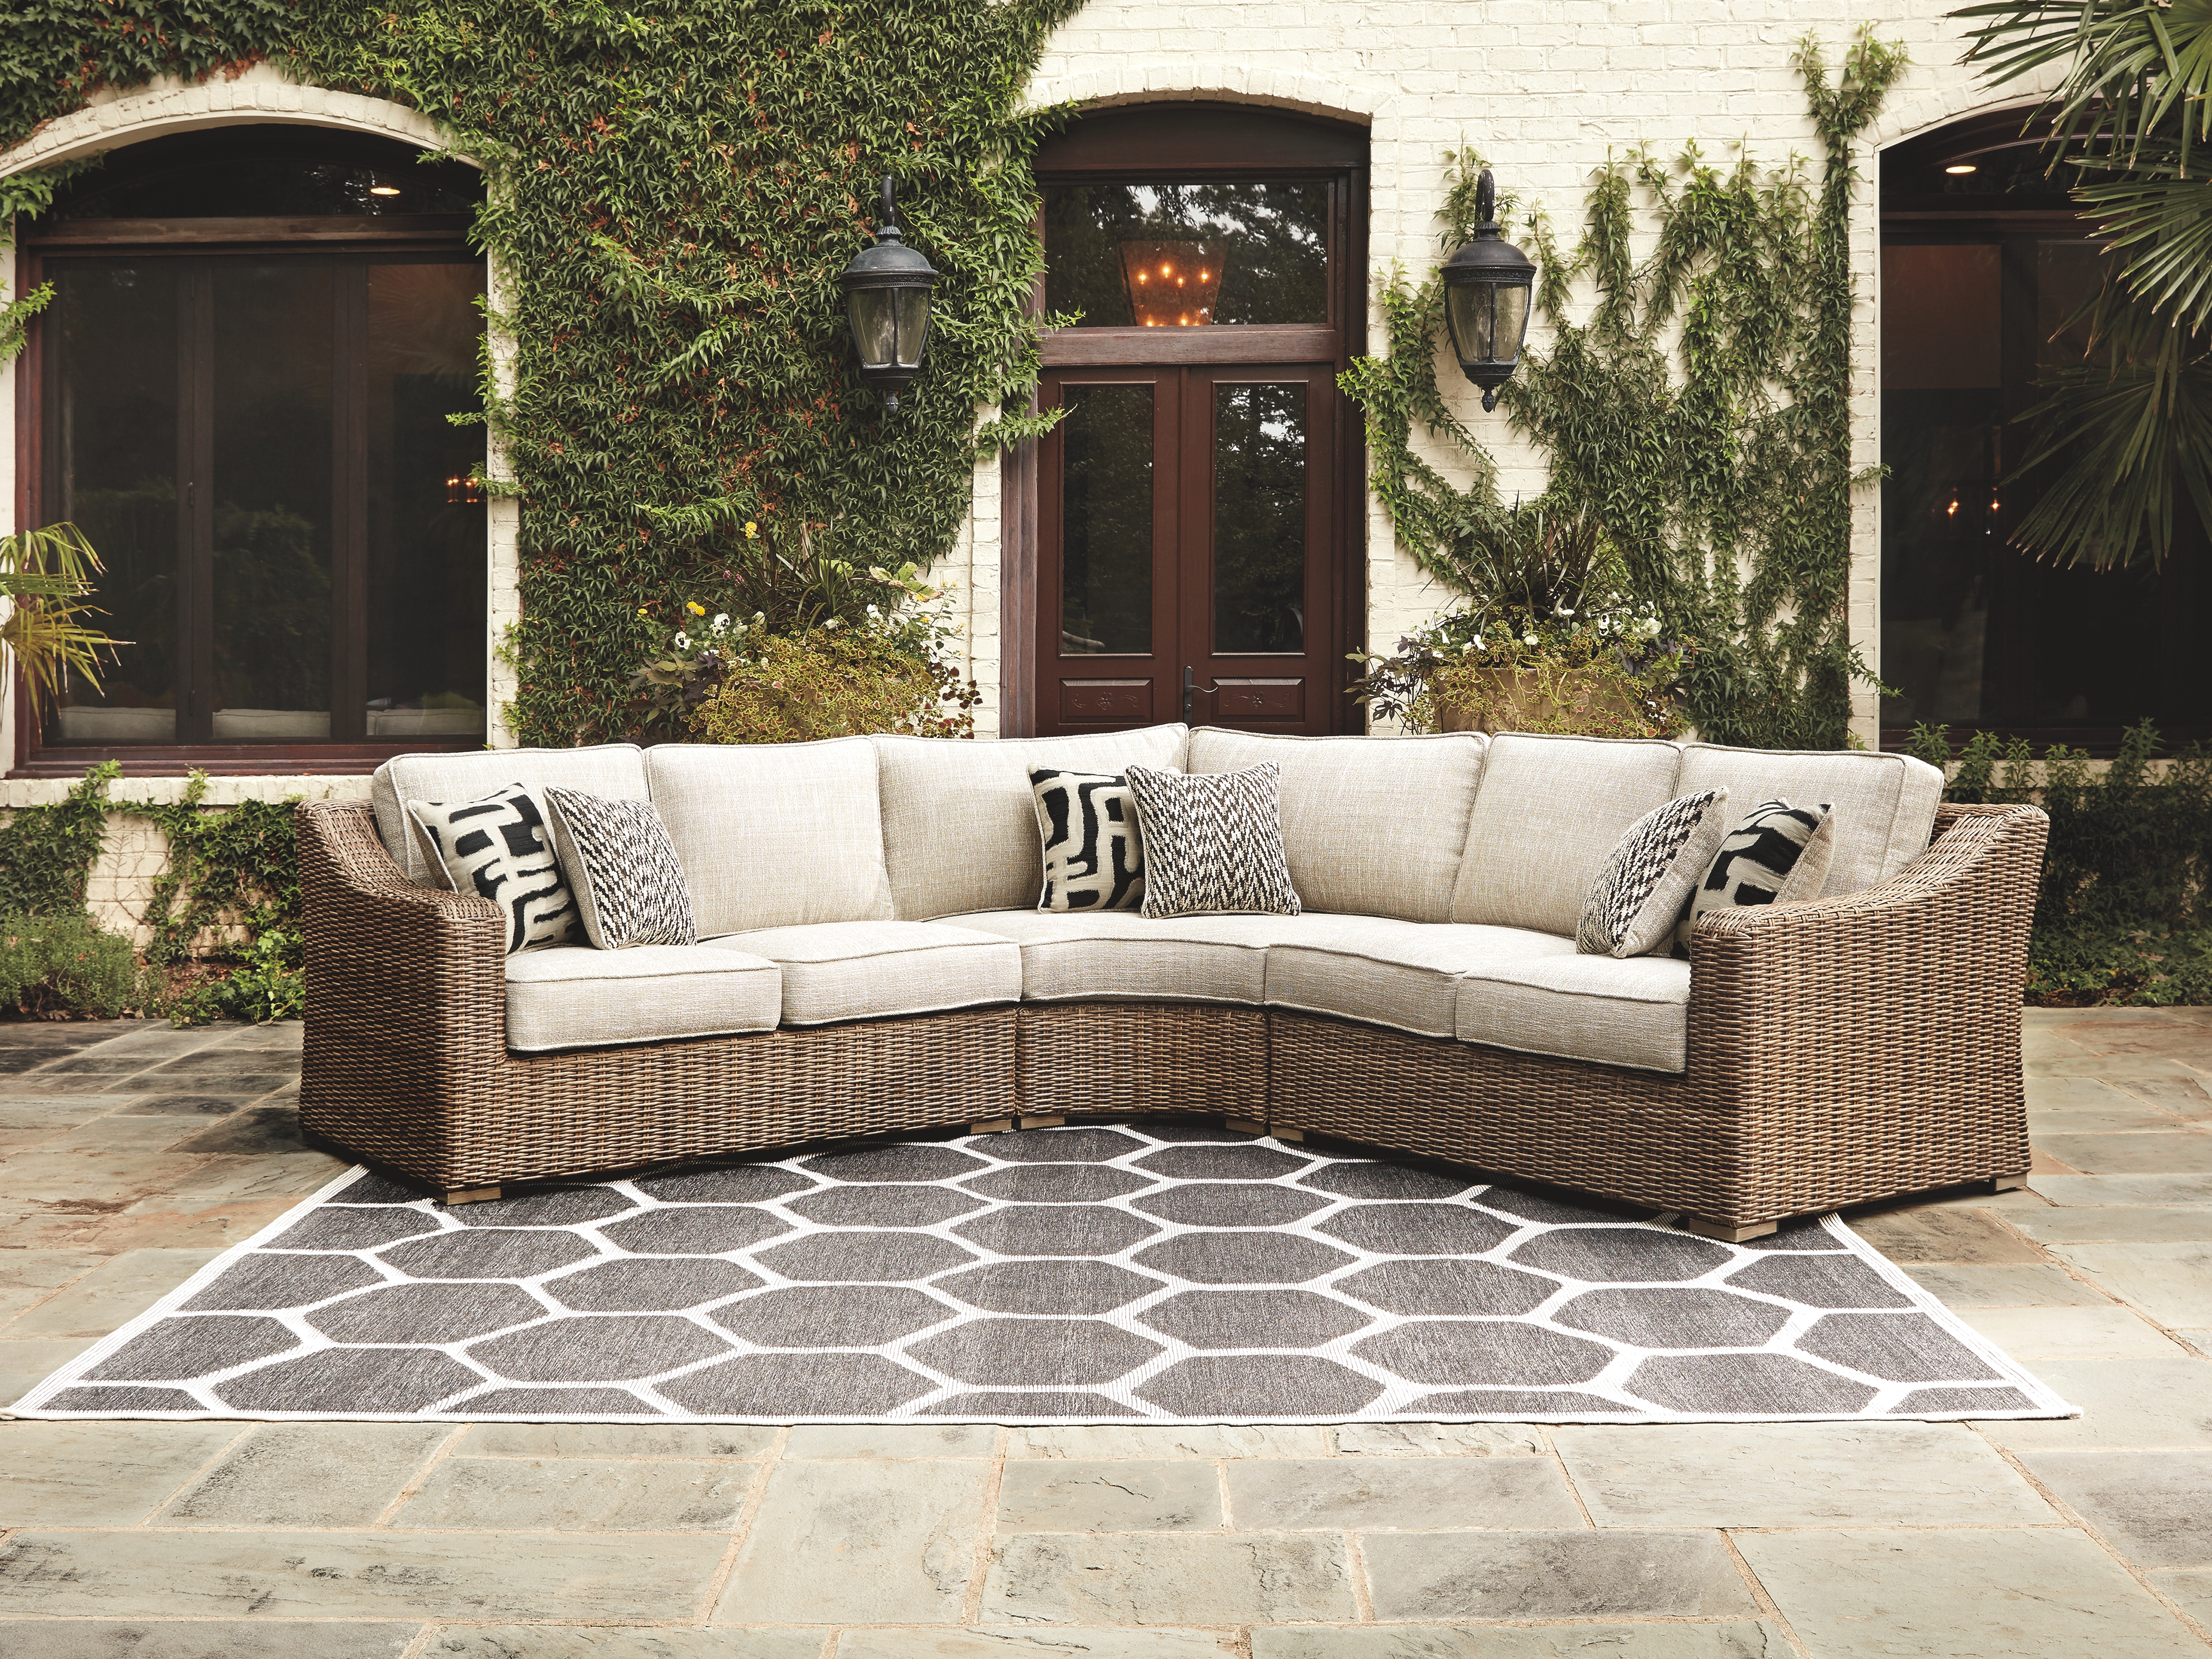 Beachcroft - Beige - 3 Pc. - Sectional Lounge - Furniture ... on Beachcroft Beige Outdoor Living Room Set id=38629